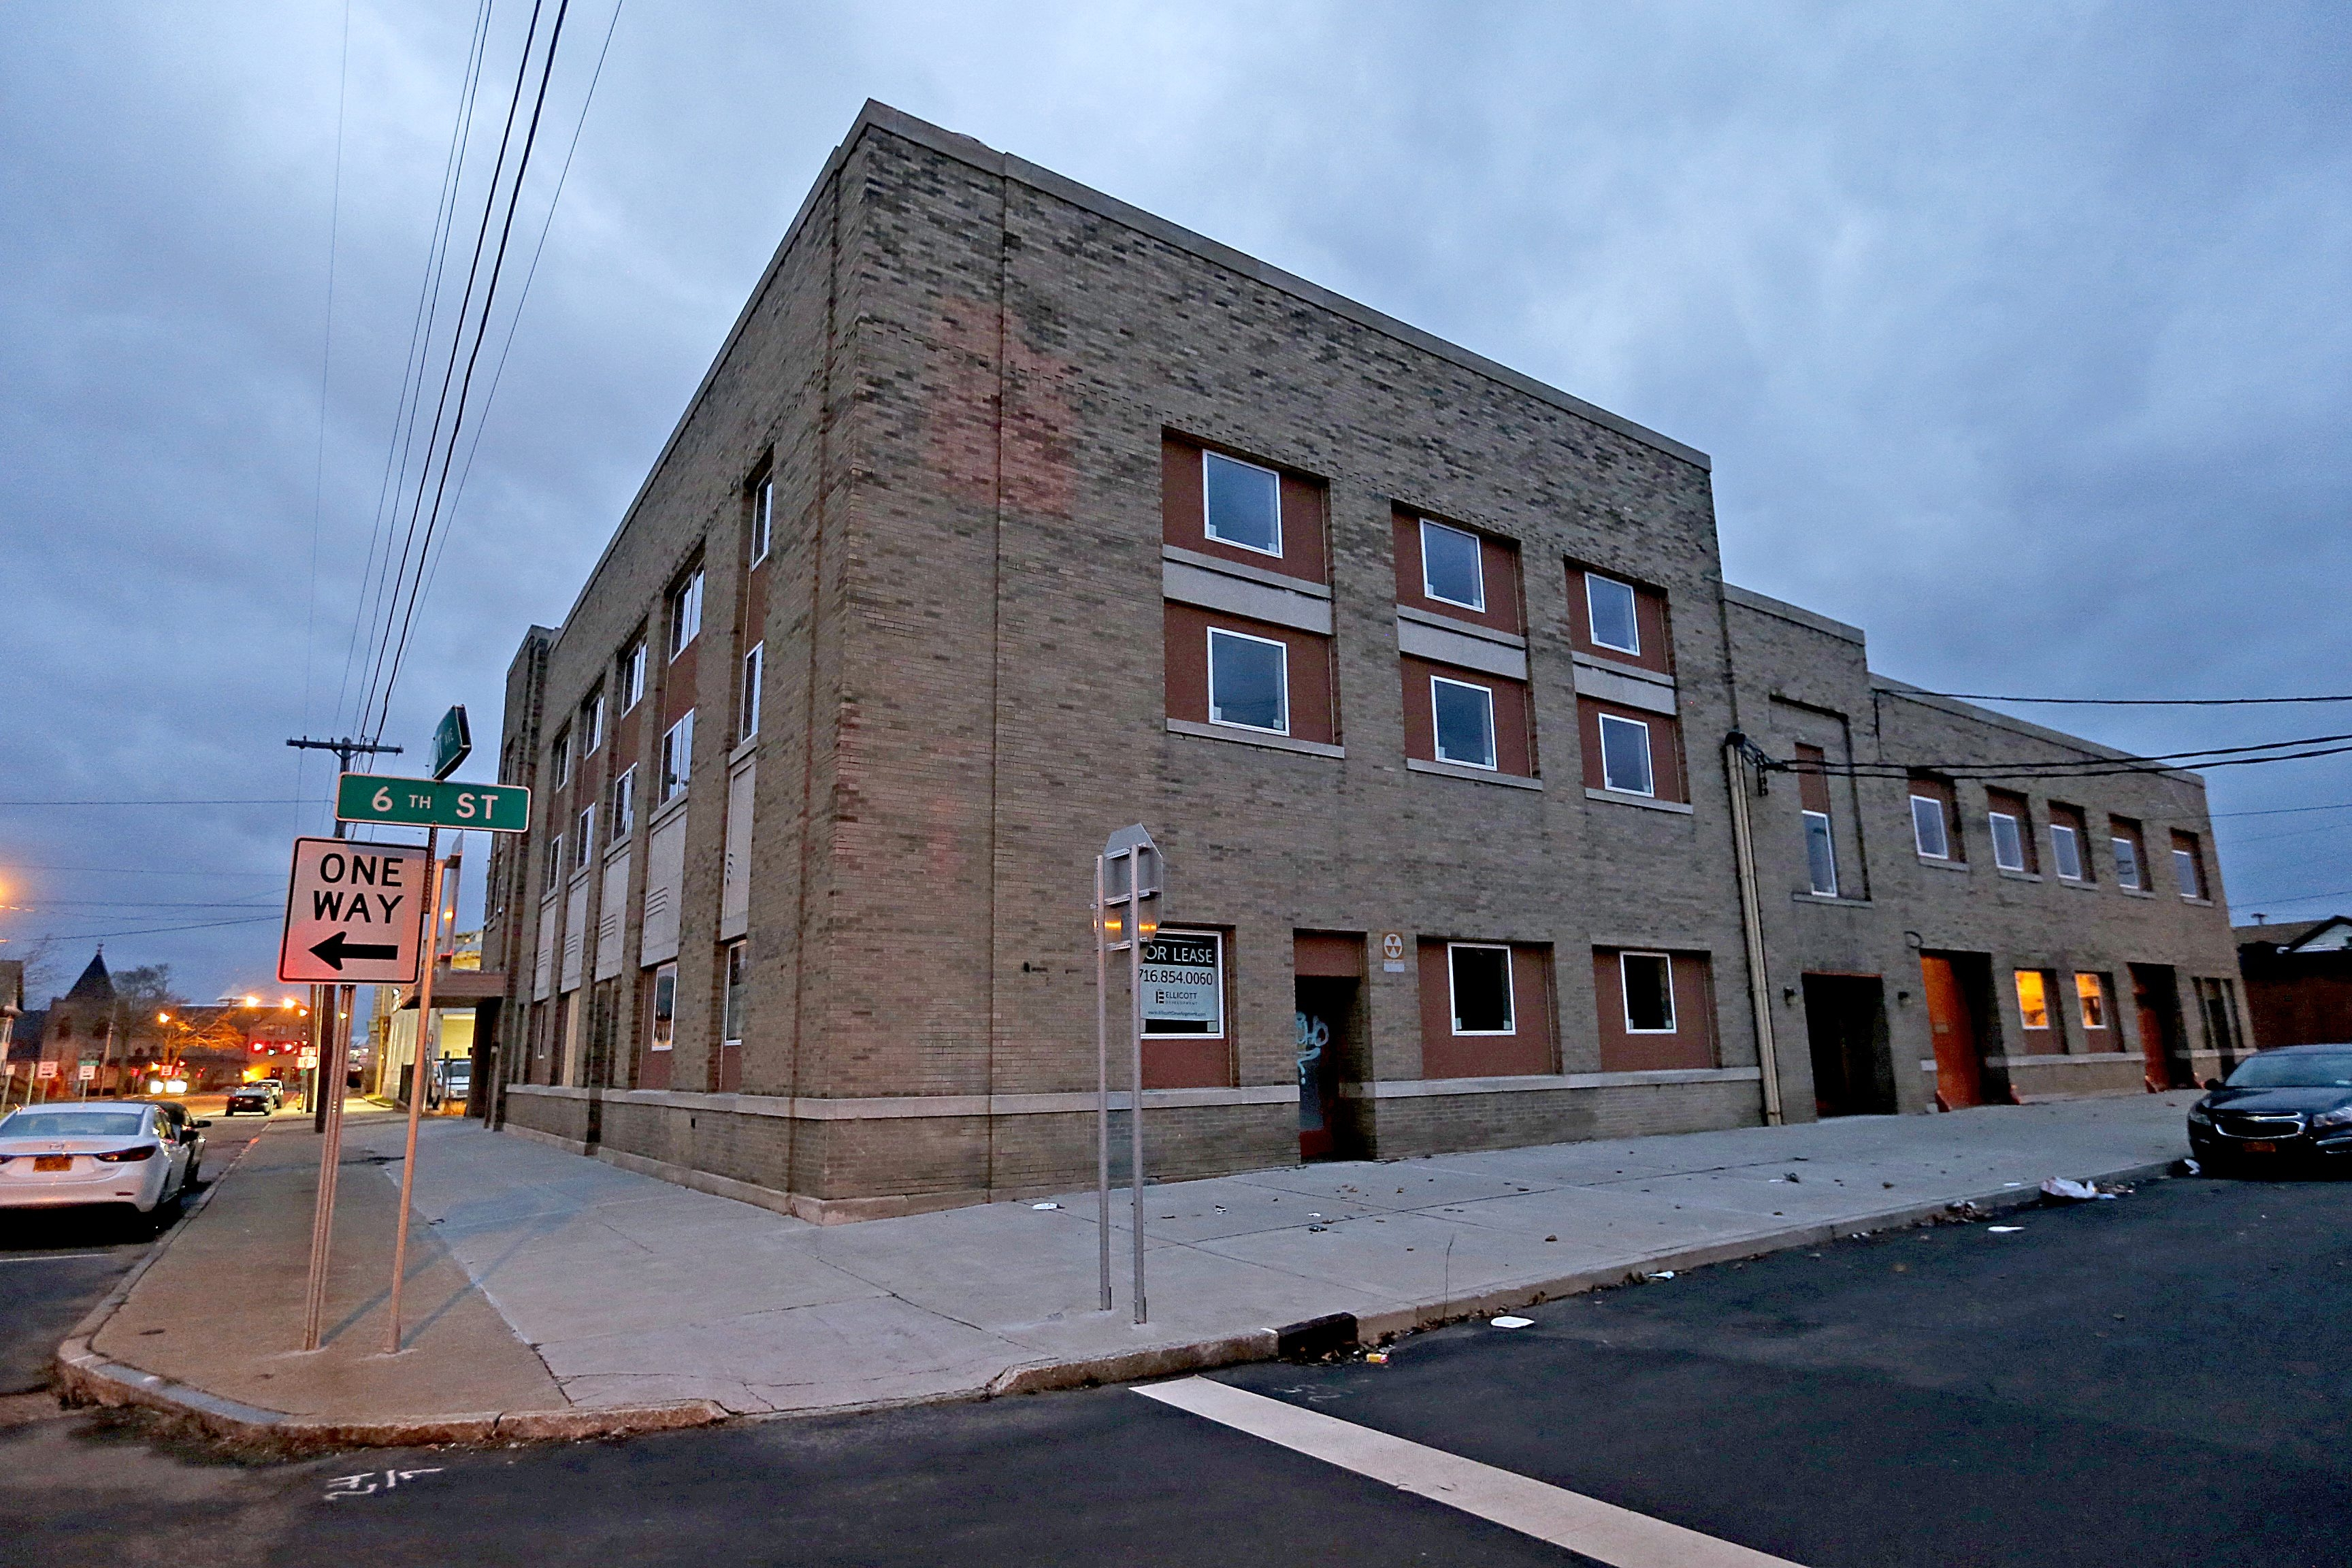 Residents and officials object to the planned expansion of the methadone clinic at 606 Sixth St. in Niagara Falls. (Robert Kirkham/Buffalo News)